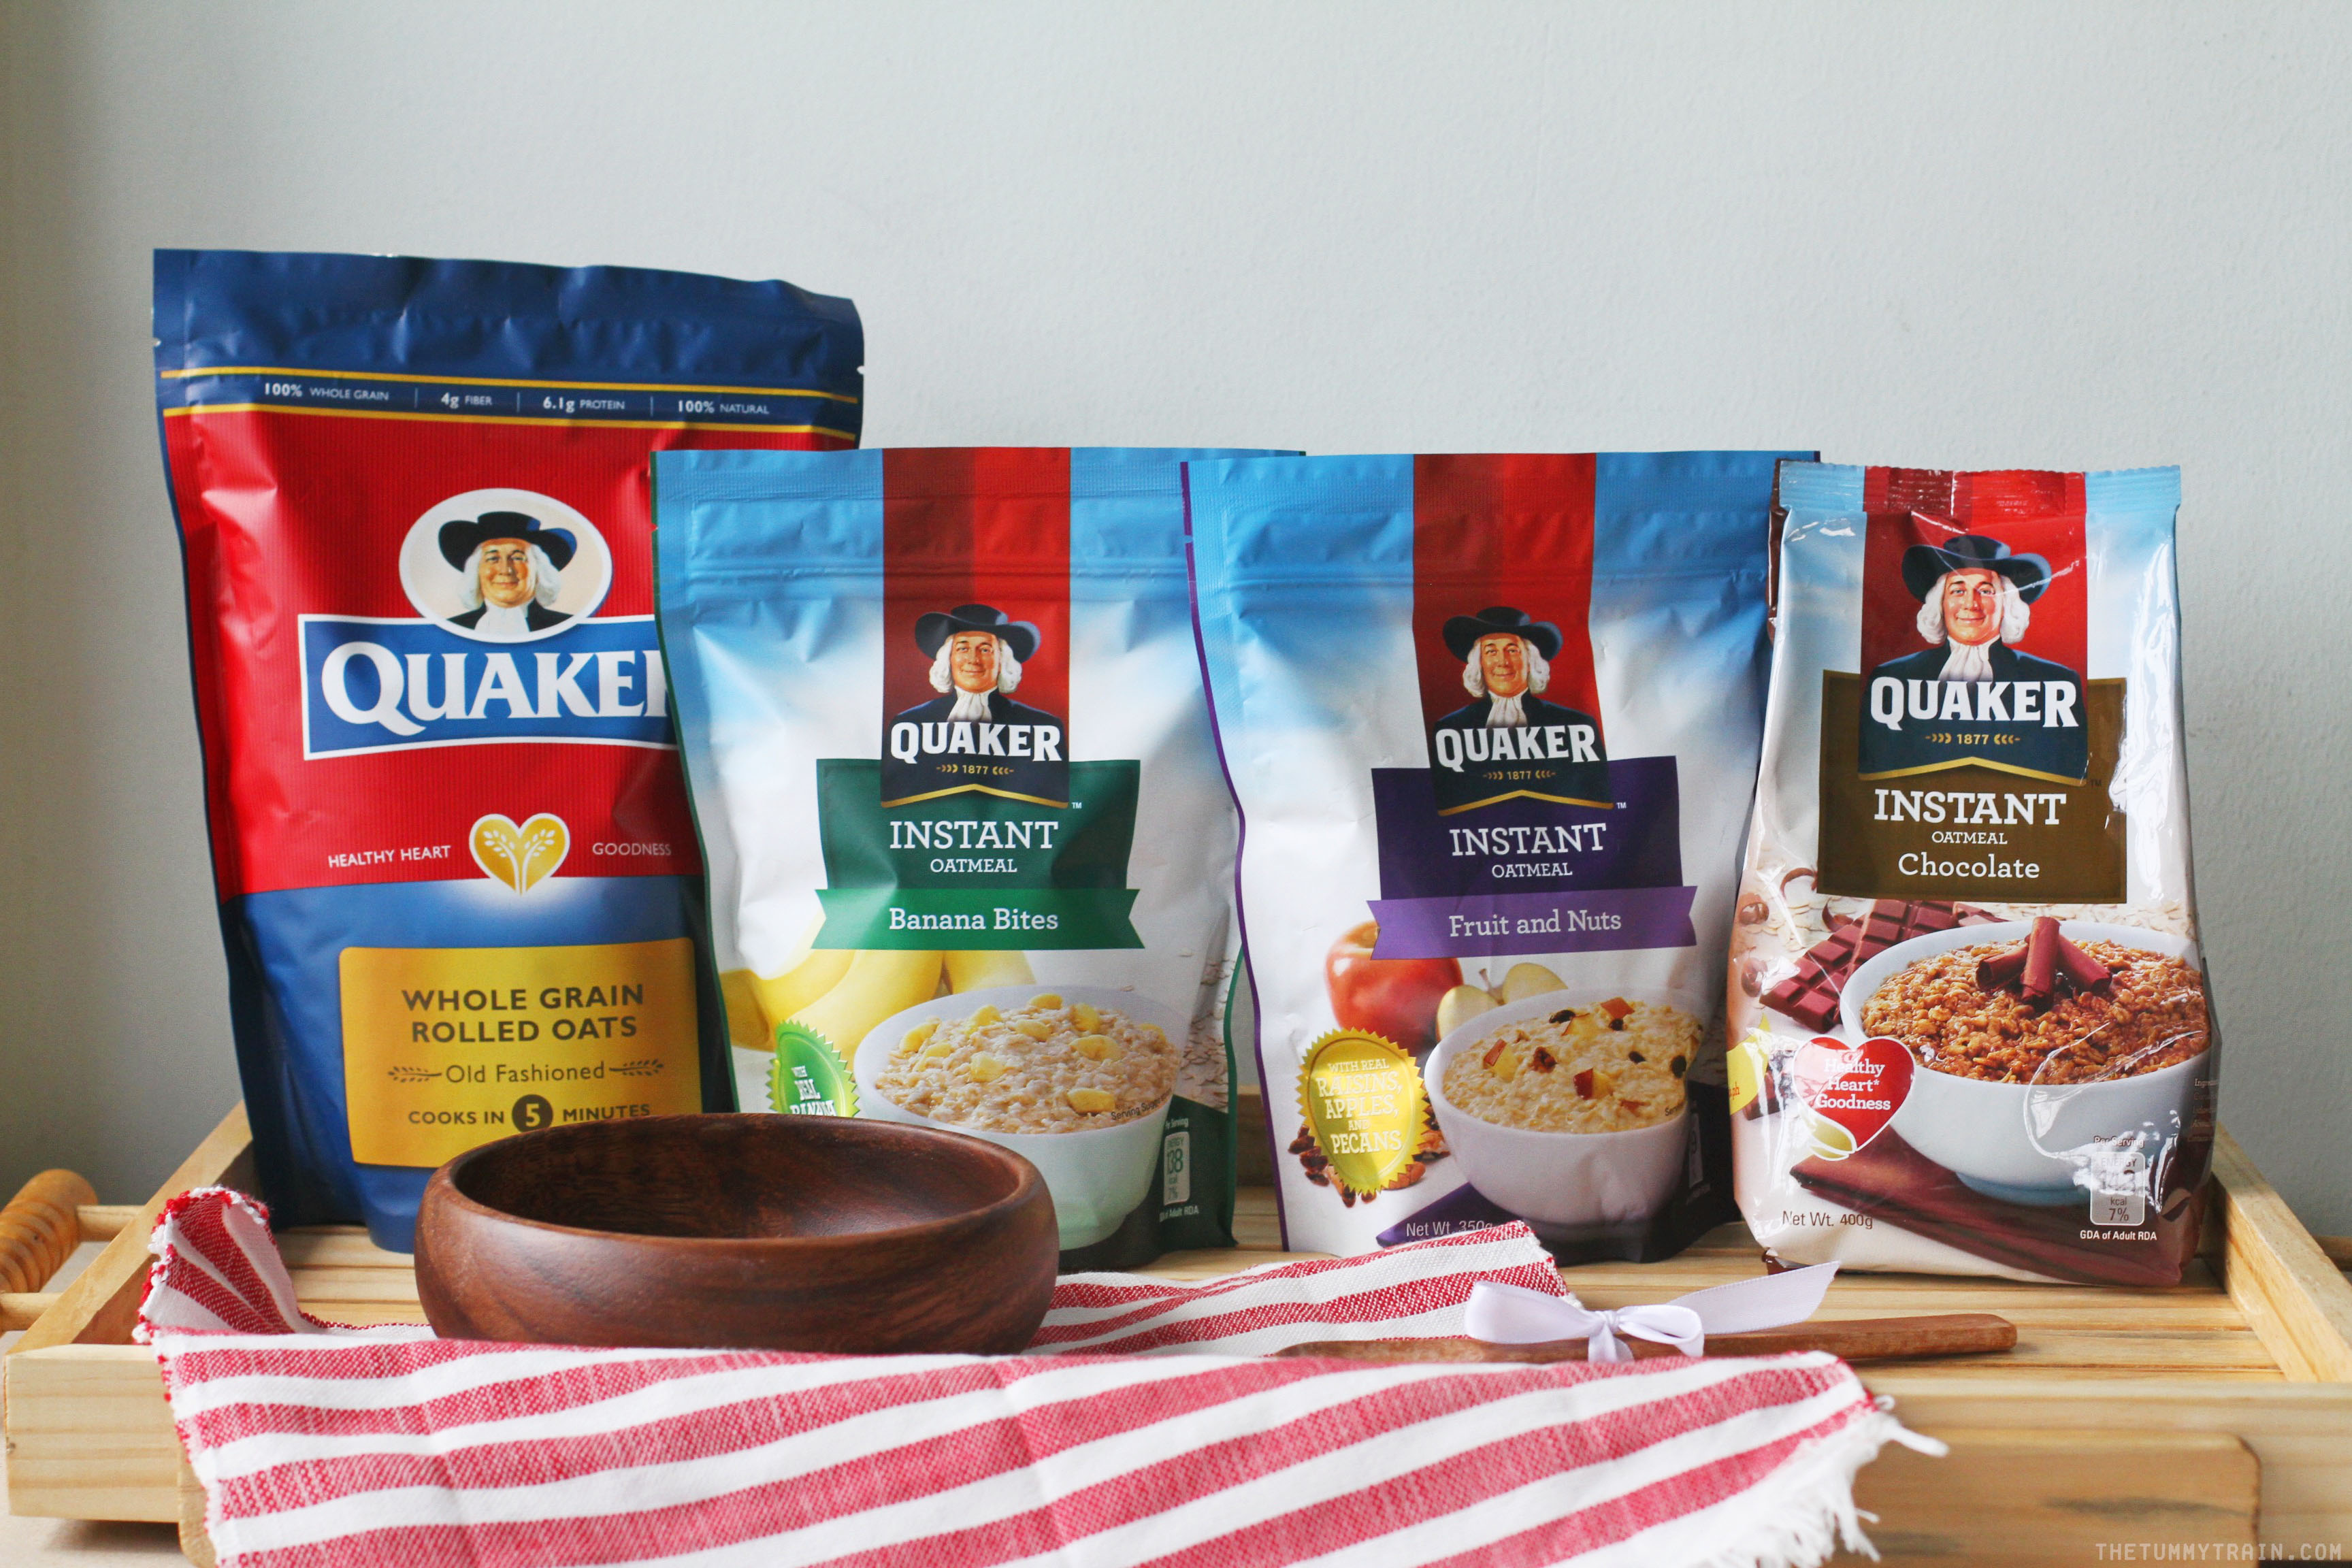 Quaker Oats 1 - Why it's a-okay to start the day with a bowl of Quaker Oats